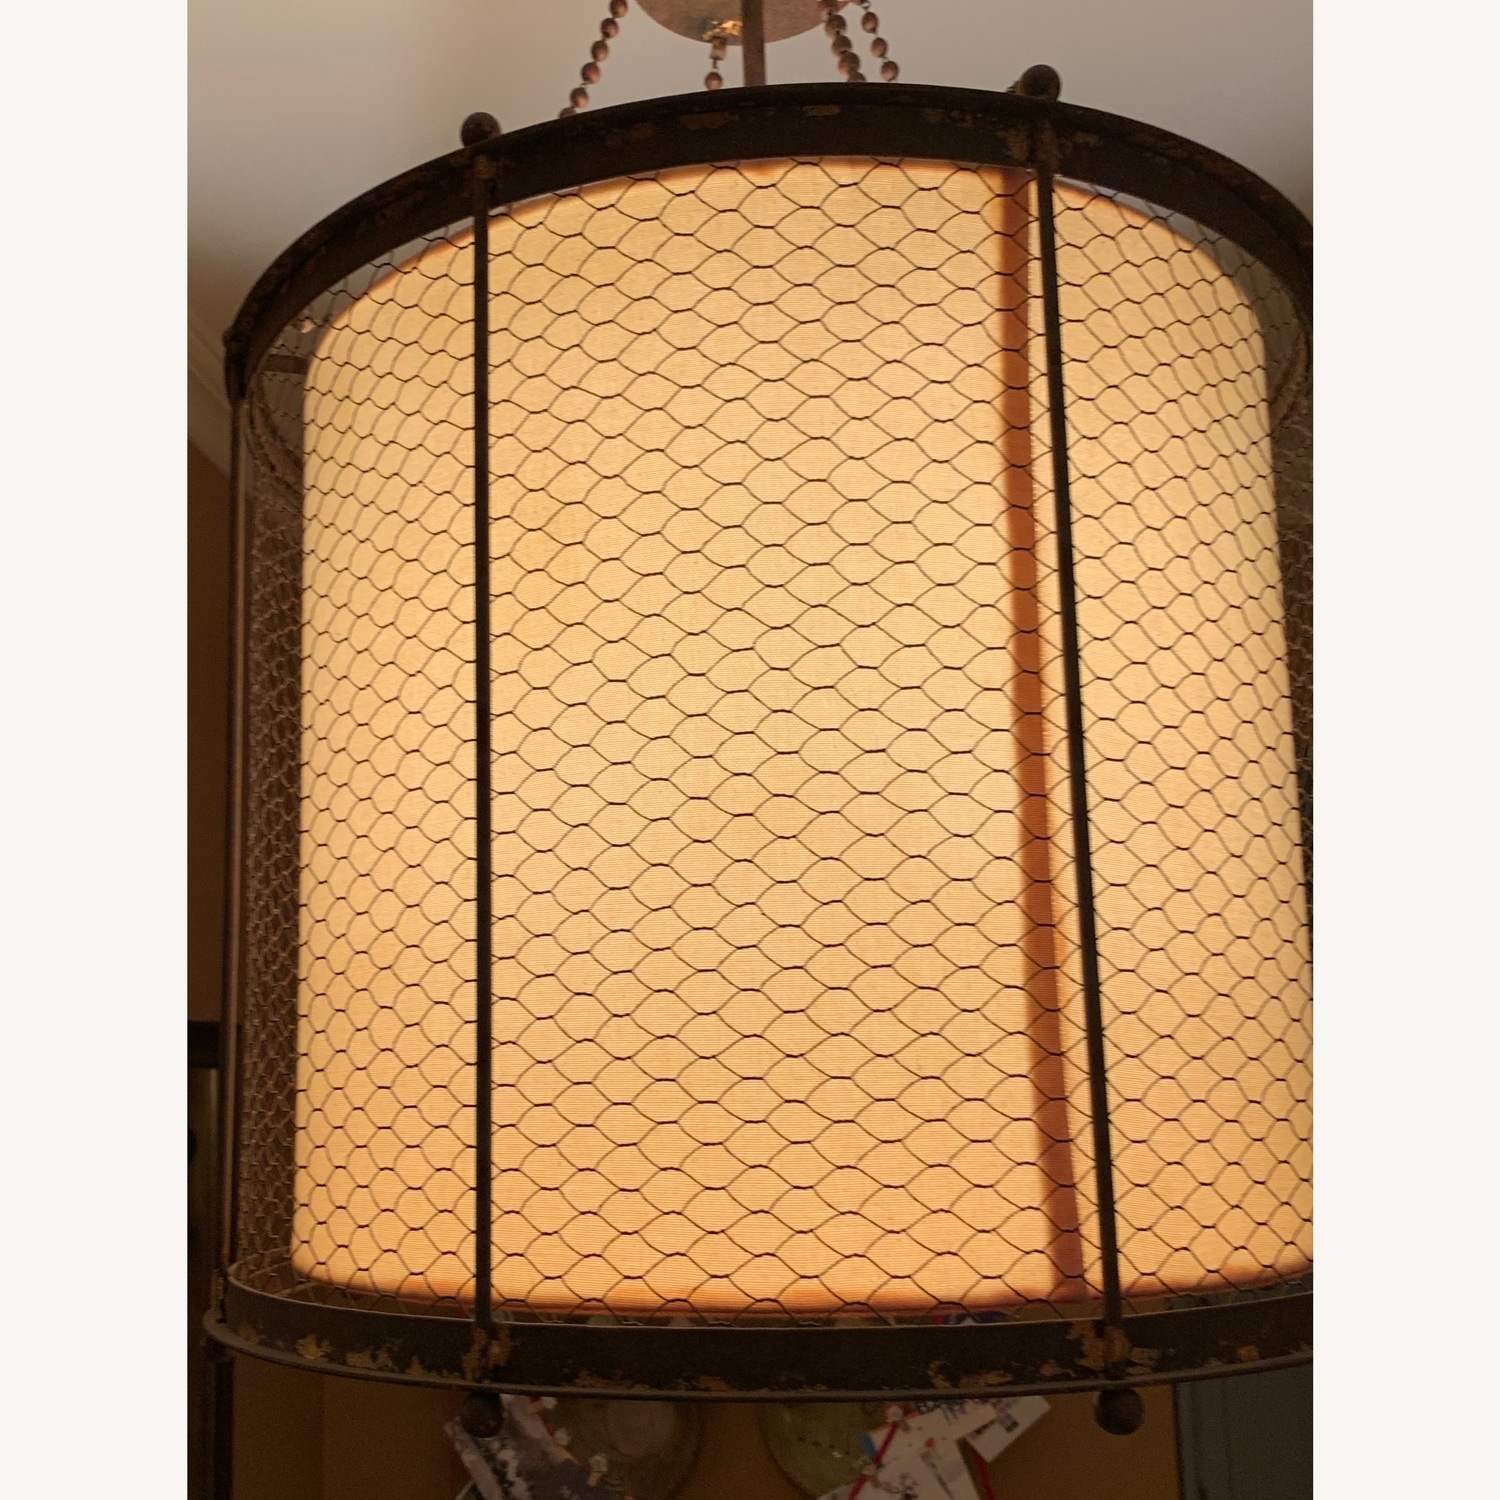 Ethan Allen Metal & Linen Barrel Ceiling Light - image-3